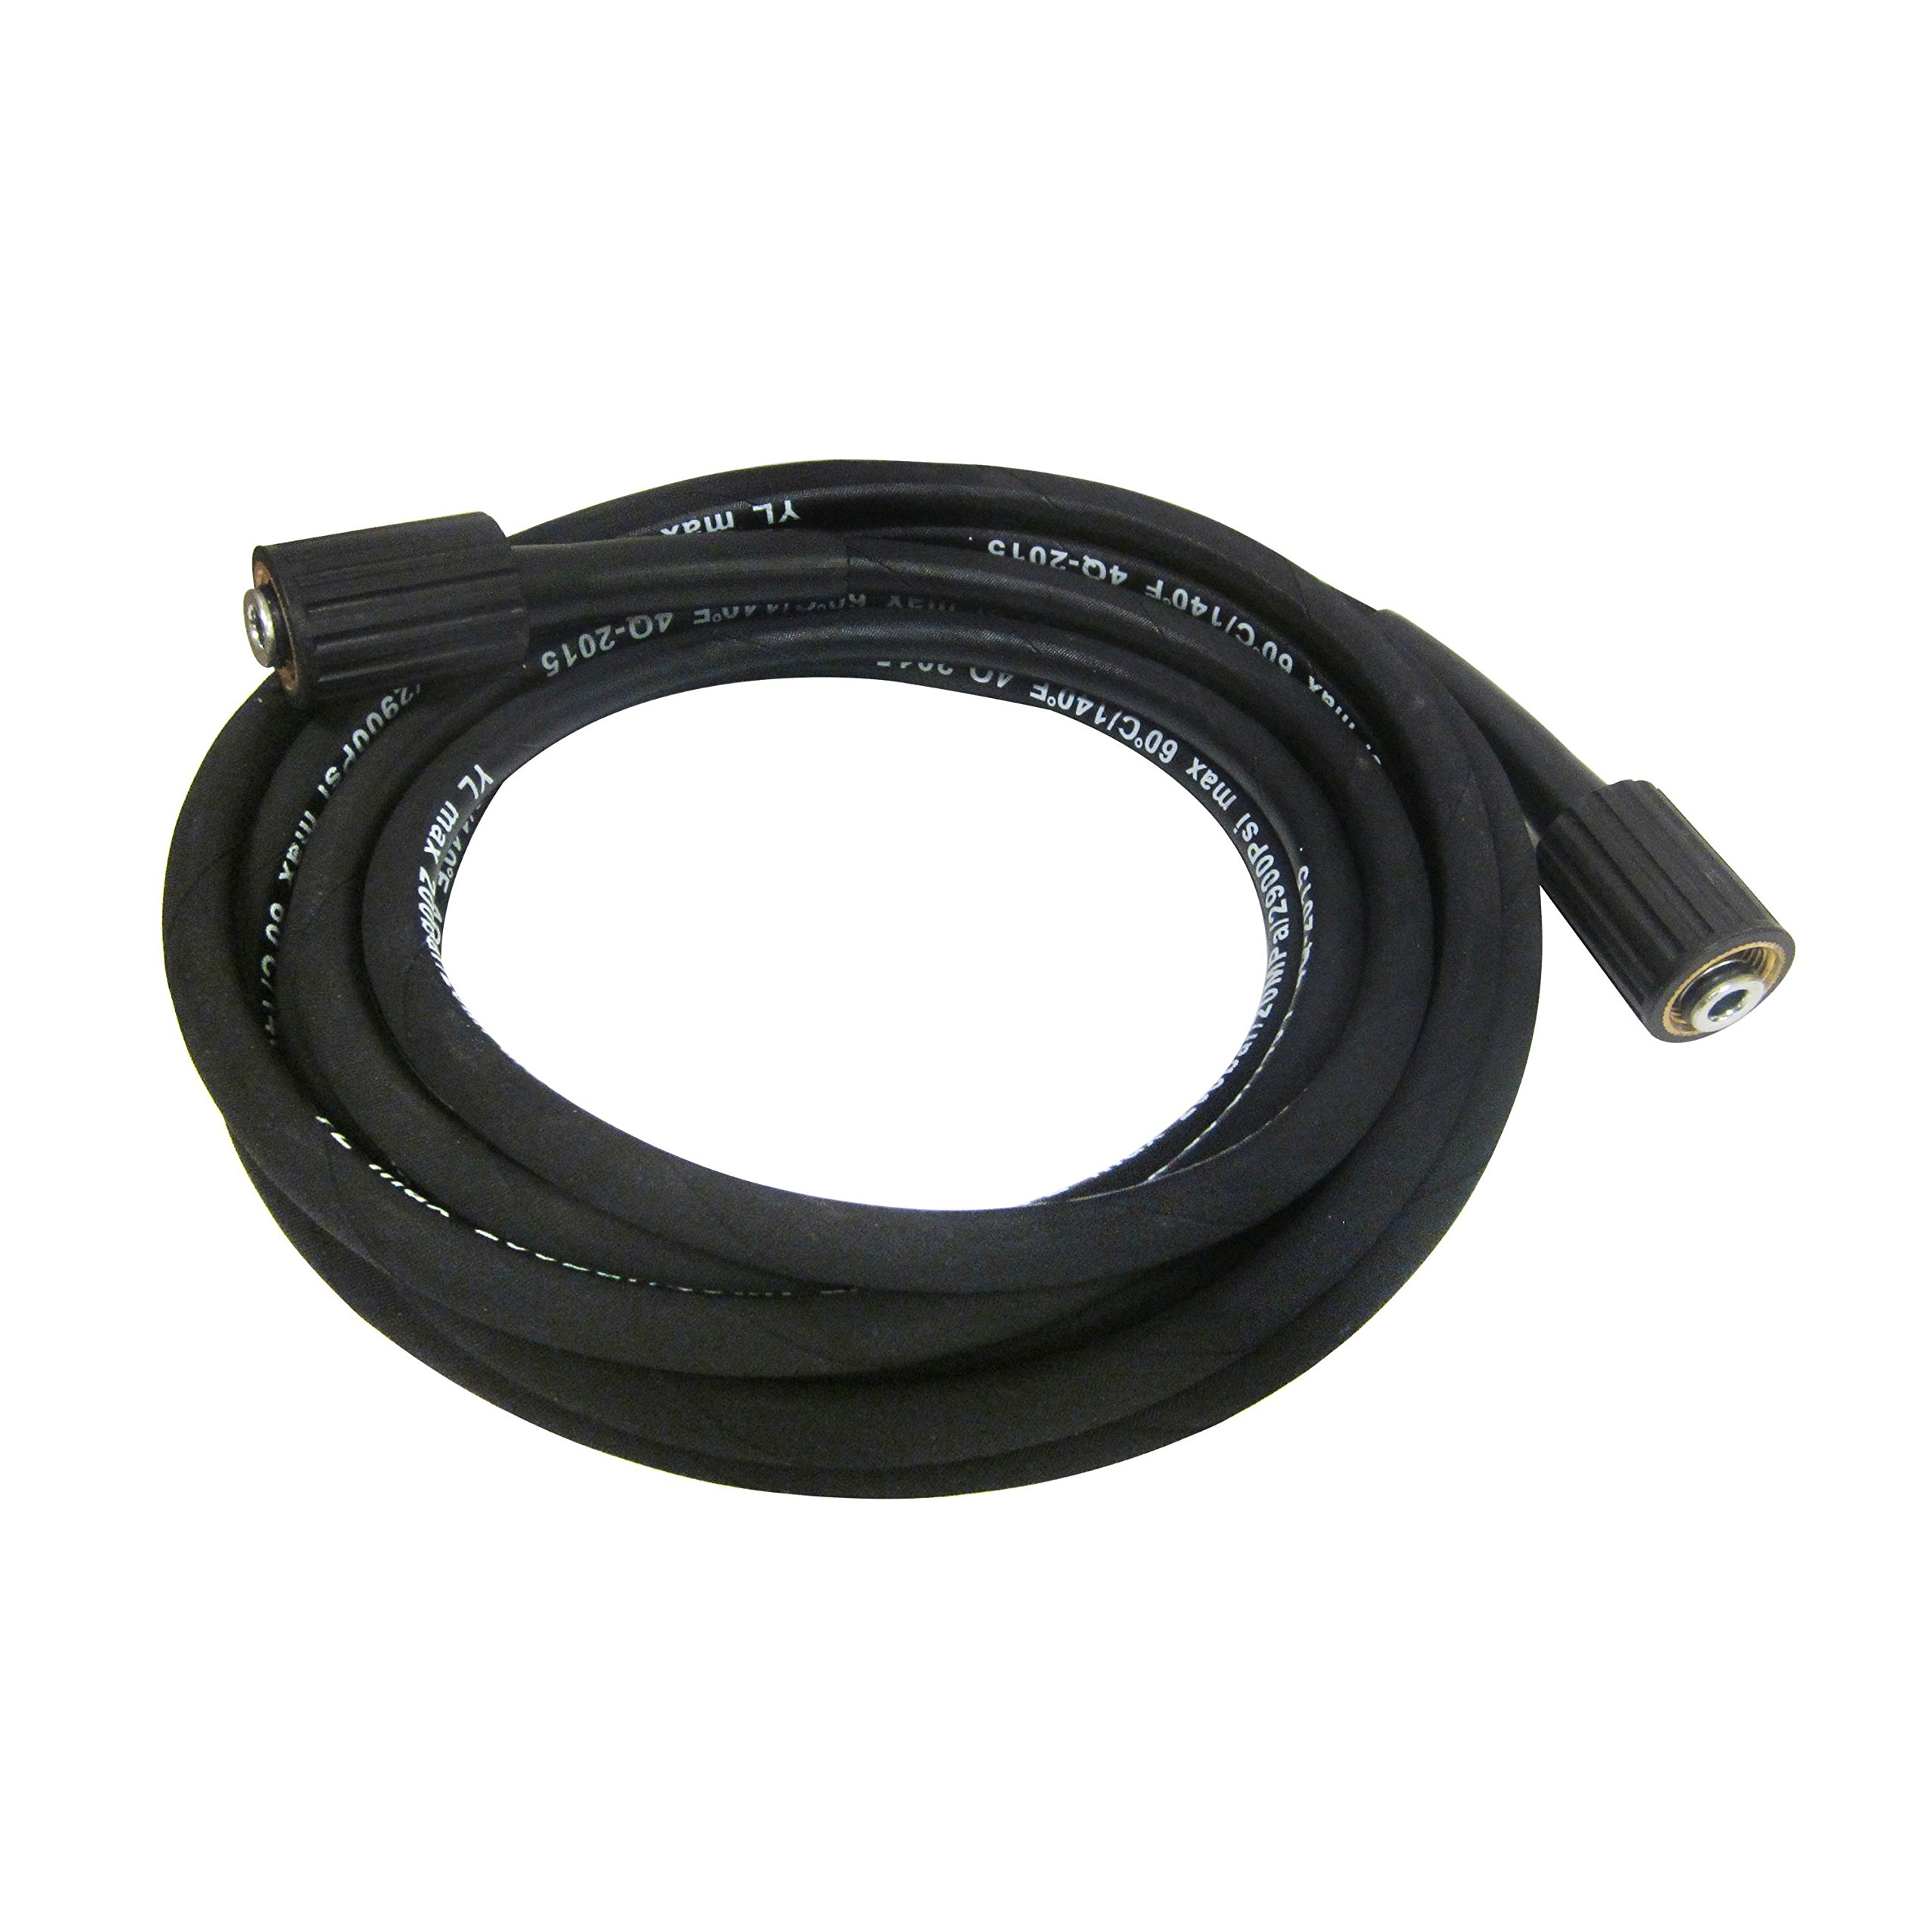 Sun Joe SPX3000-33 Pressure Washer Replacement Pressure Hose for SPX3000 Series